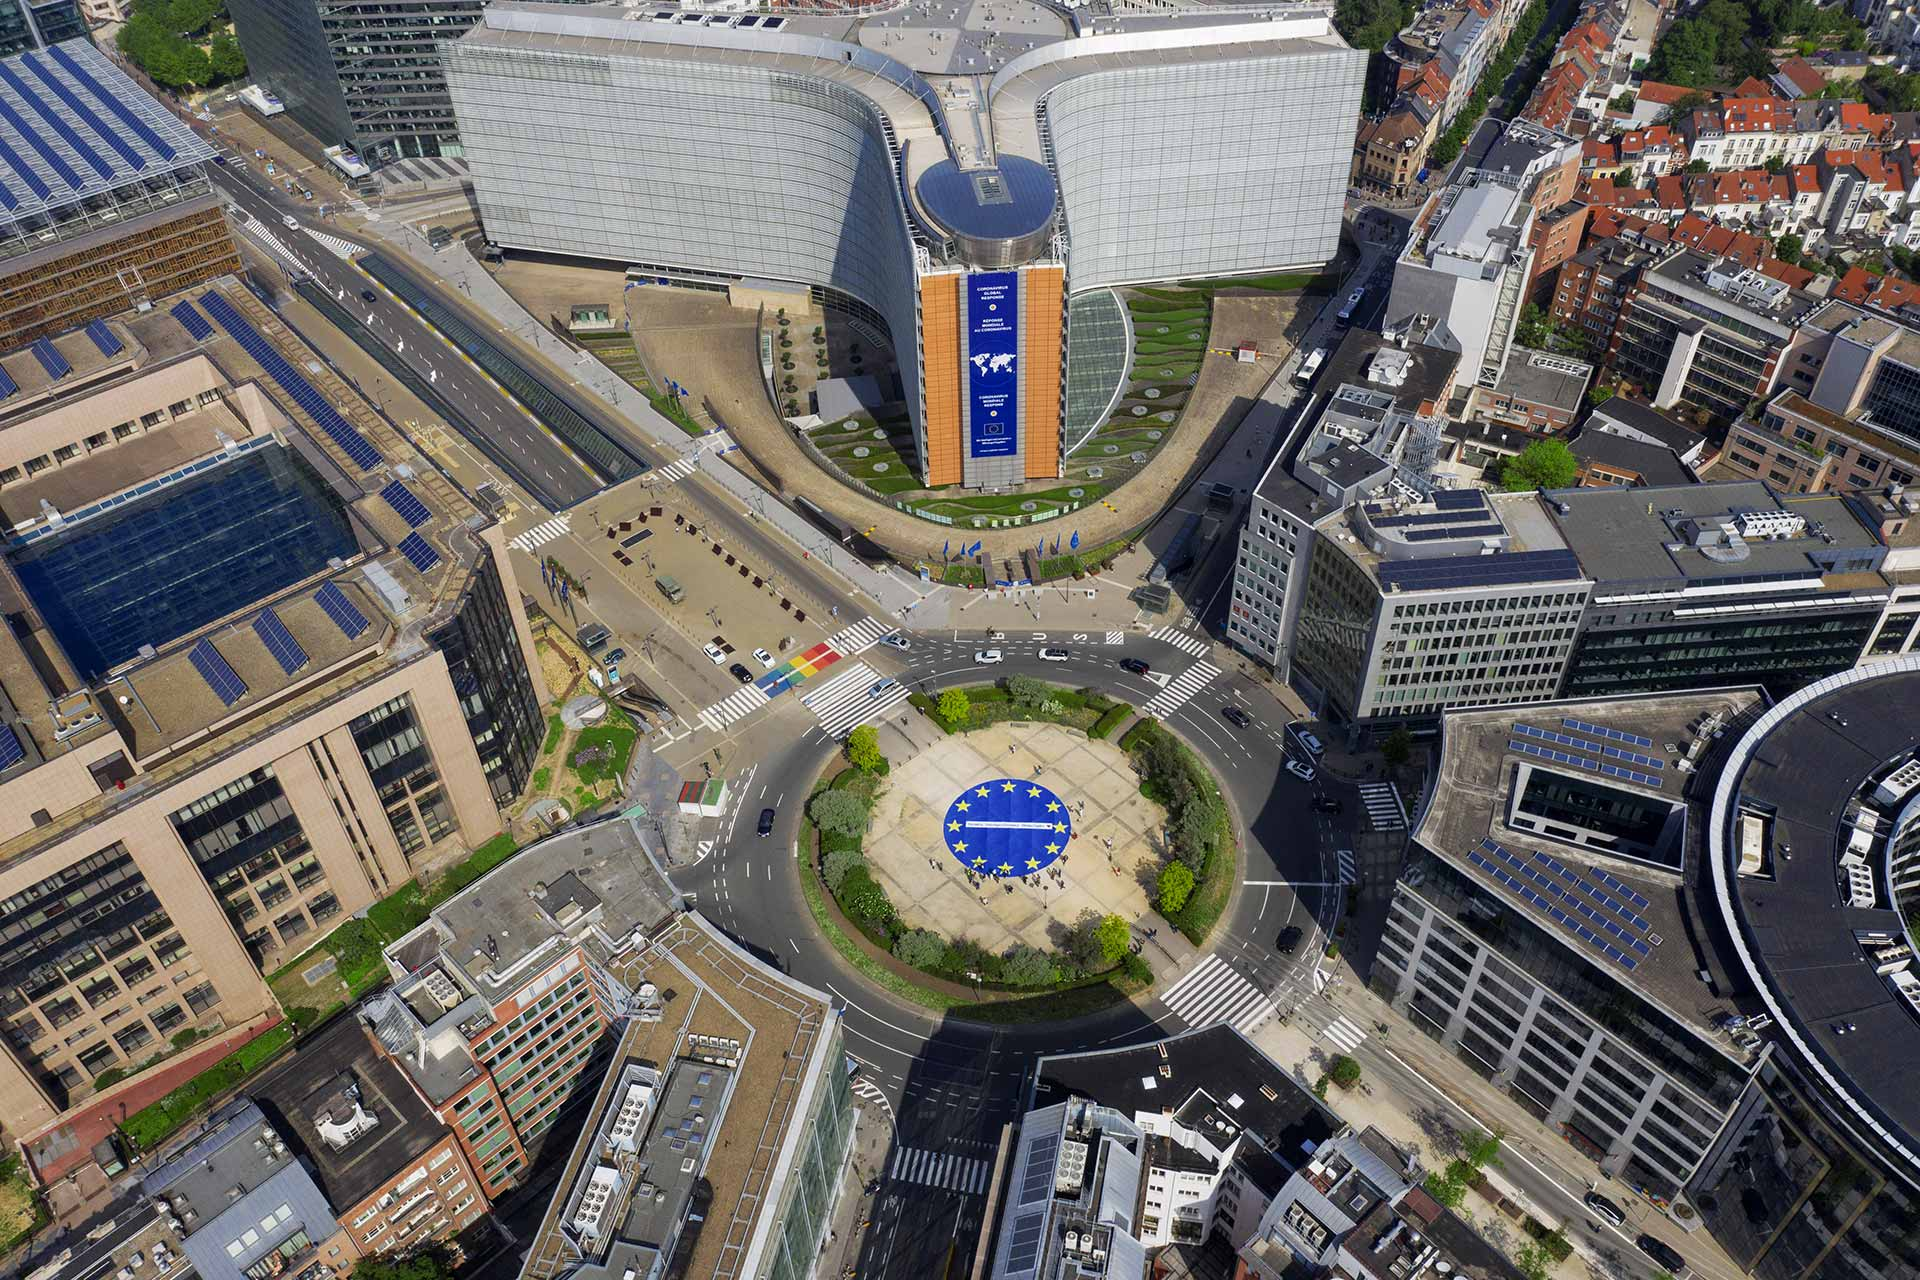 Aerial view of Rond-Point Schuman and the Berlaymont building